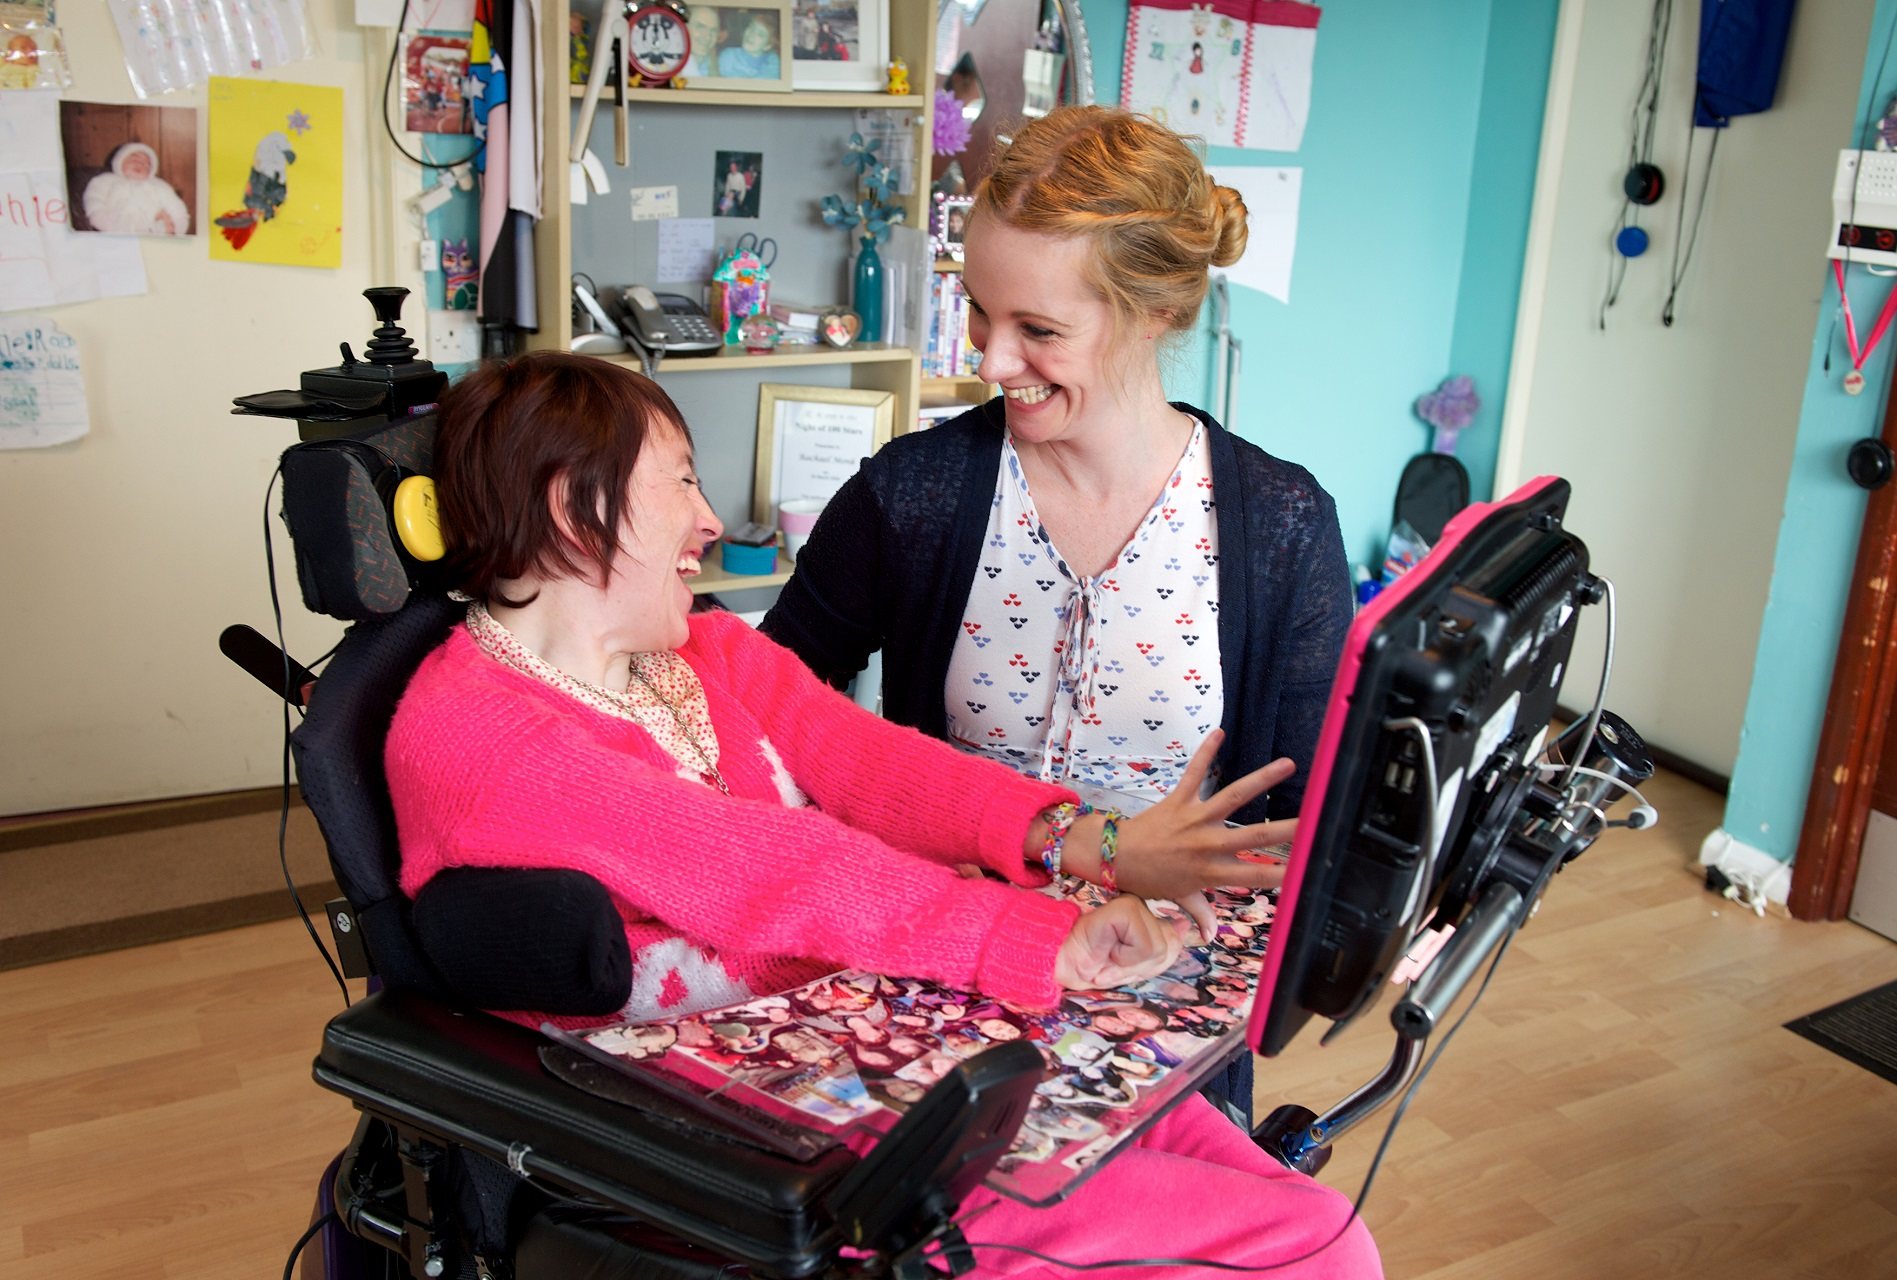 Wheelchair user and carer using computer